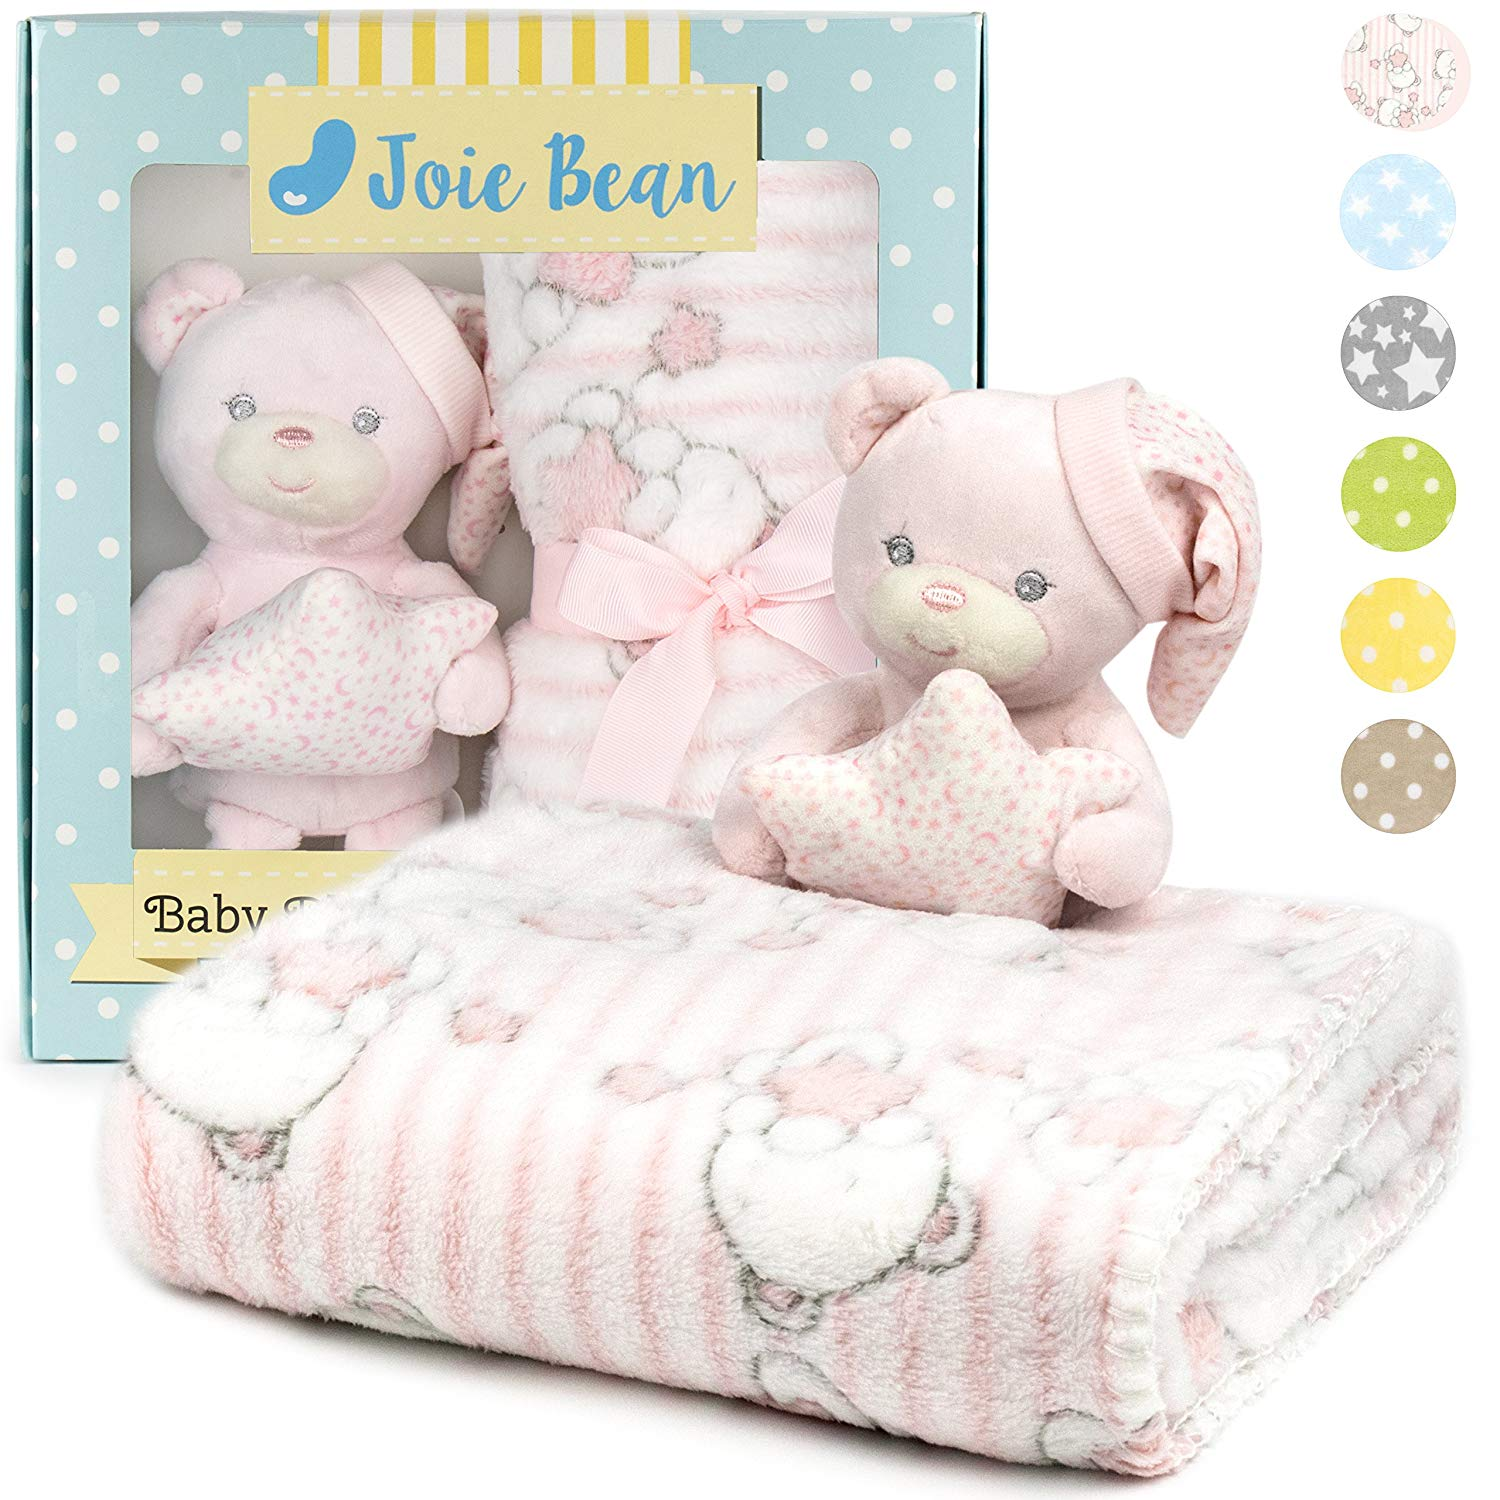 Premium Baby Blanket Set for Girl with Stuffed Animal Plush Toy | Soft Fleece Security Throw Blanket for Baby, Newborn, and Toddler | Nursery Bedding and Baby Shower Gift (Pink – Teddy Bear)